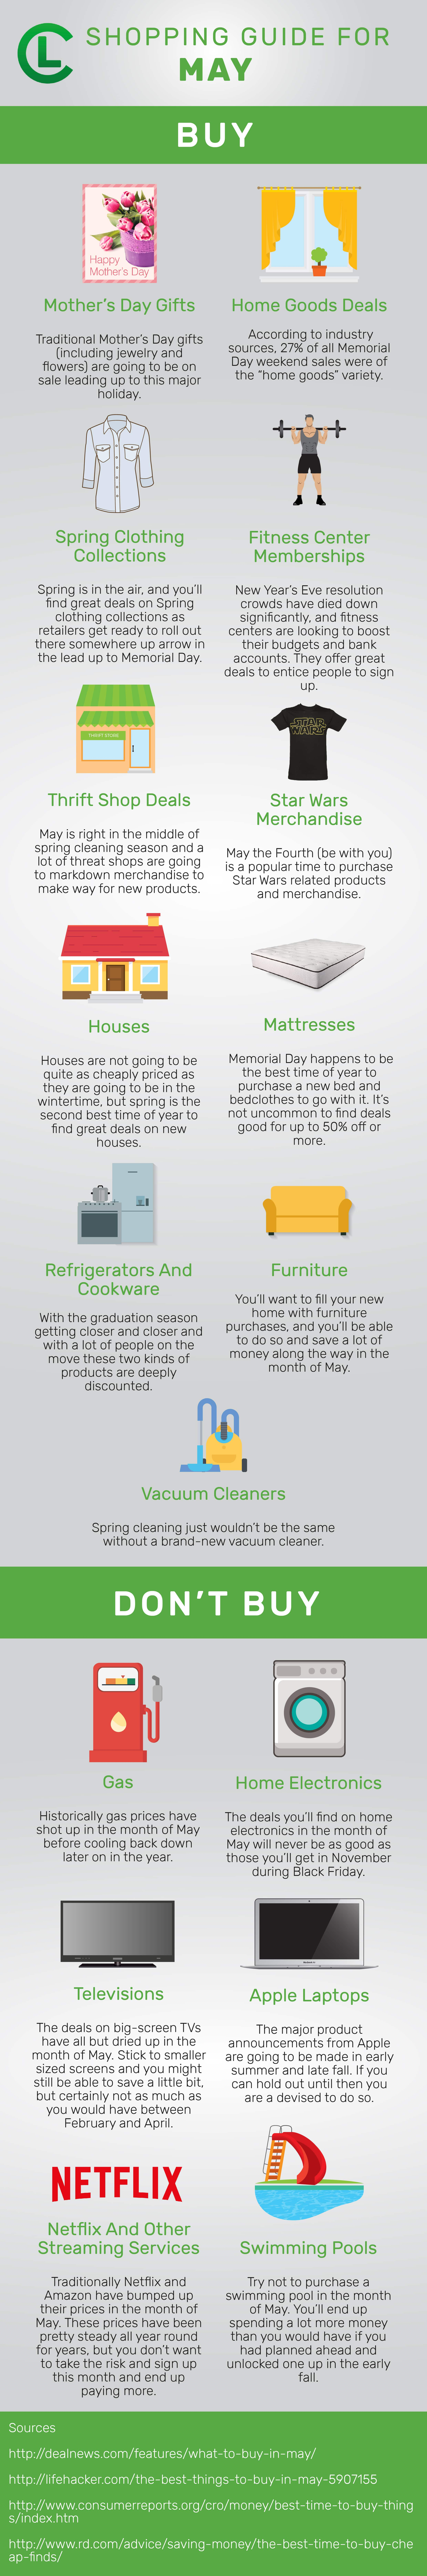 Shopping Guide For May Infographic